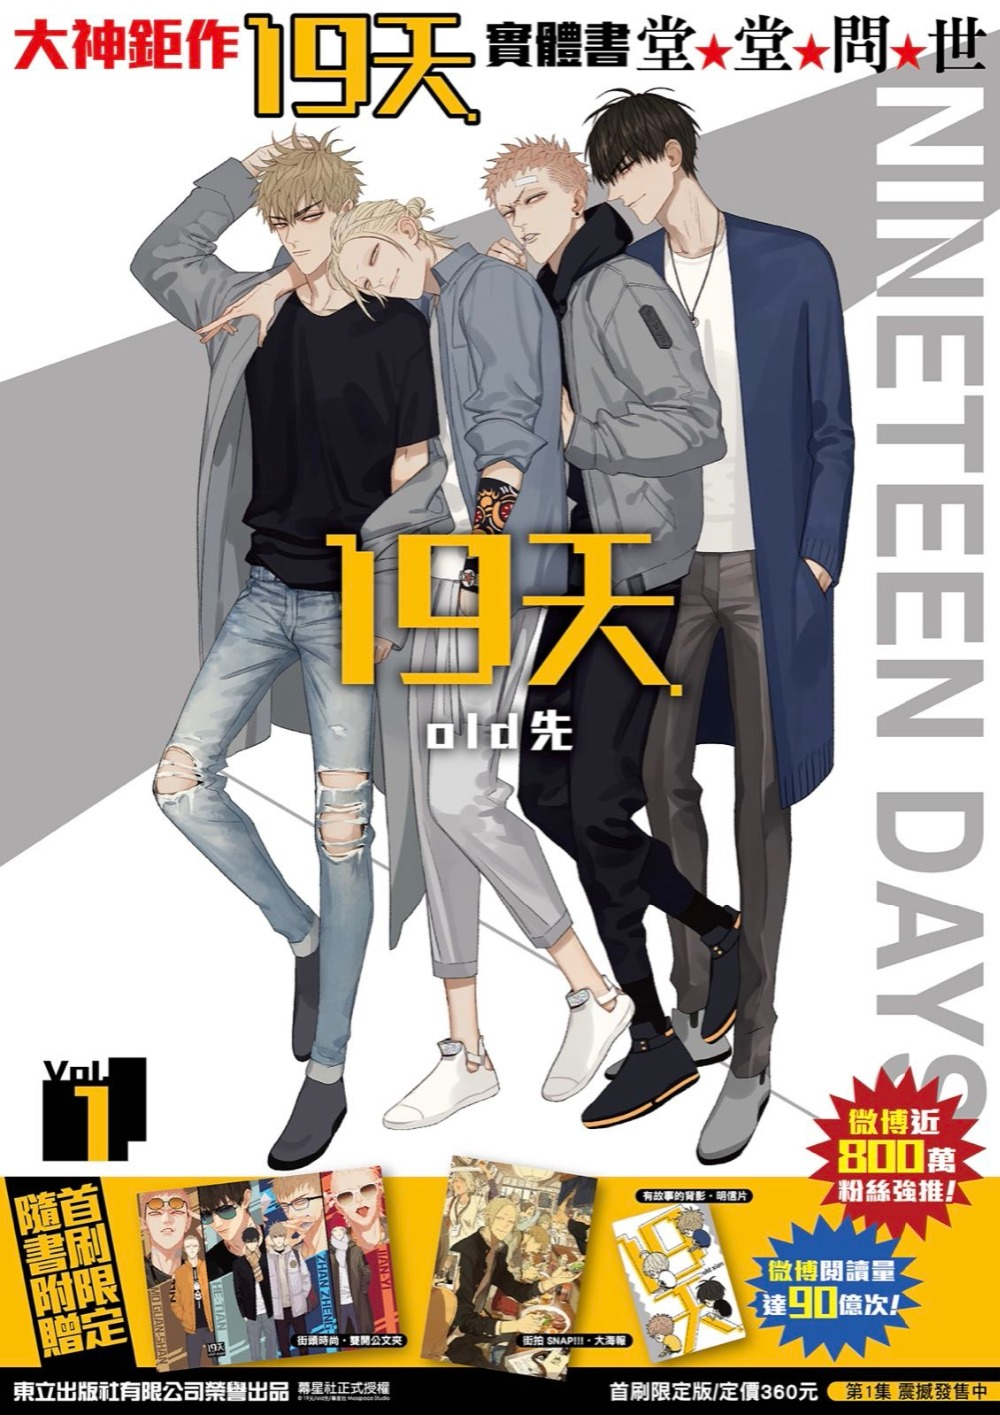 New Old Xian 19 Days Art Collection Book Chinese Comic Book Illustration Artwork Painting Collection Drawing Teens Adult Books